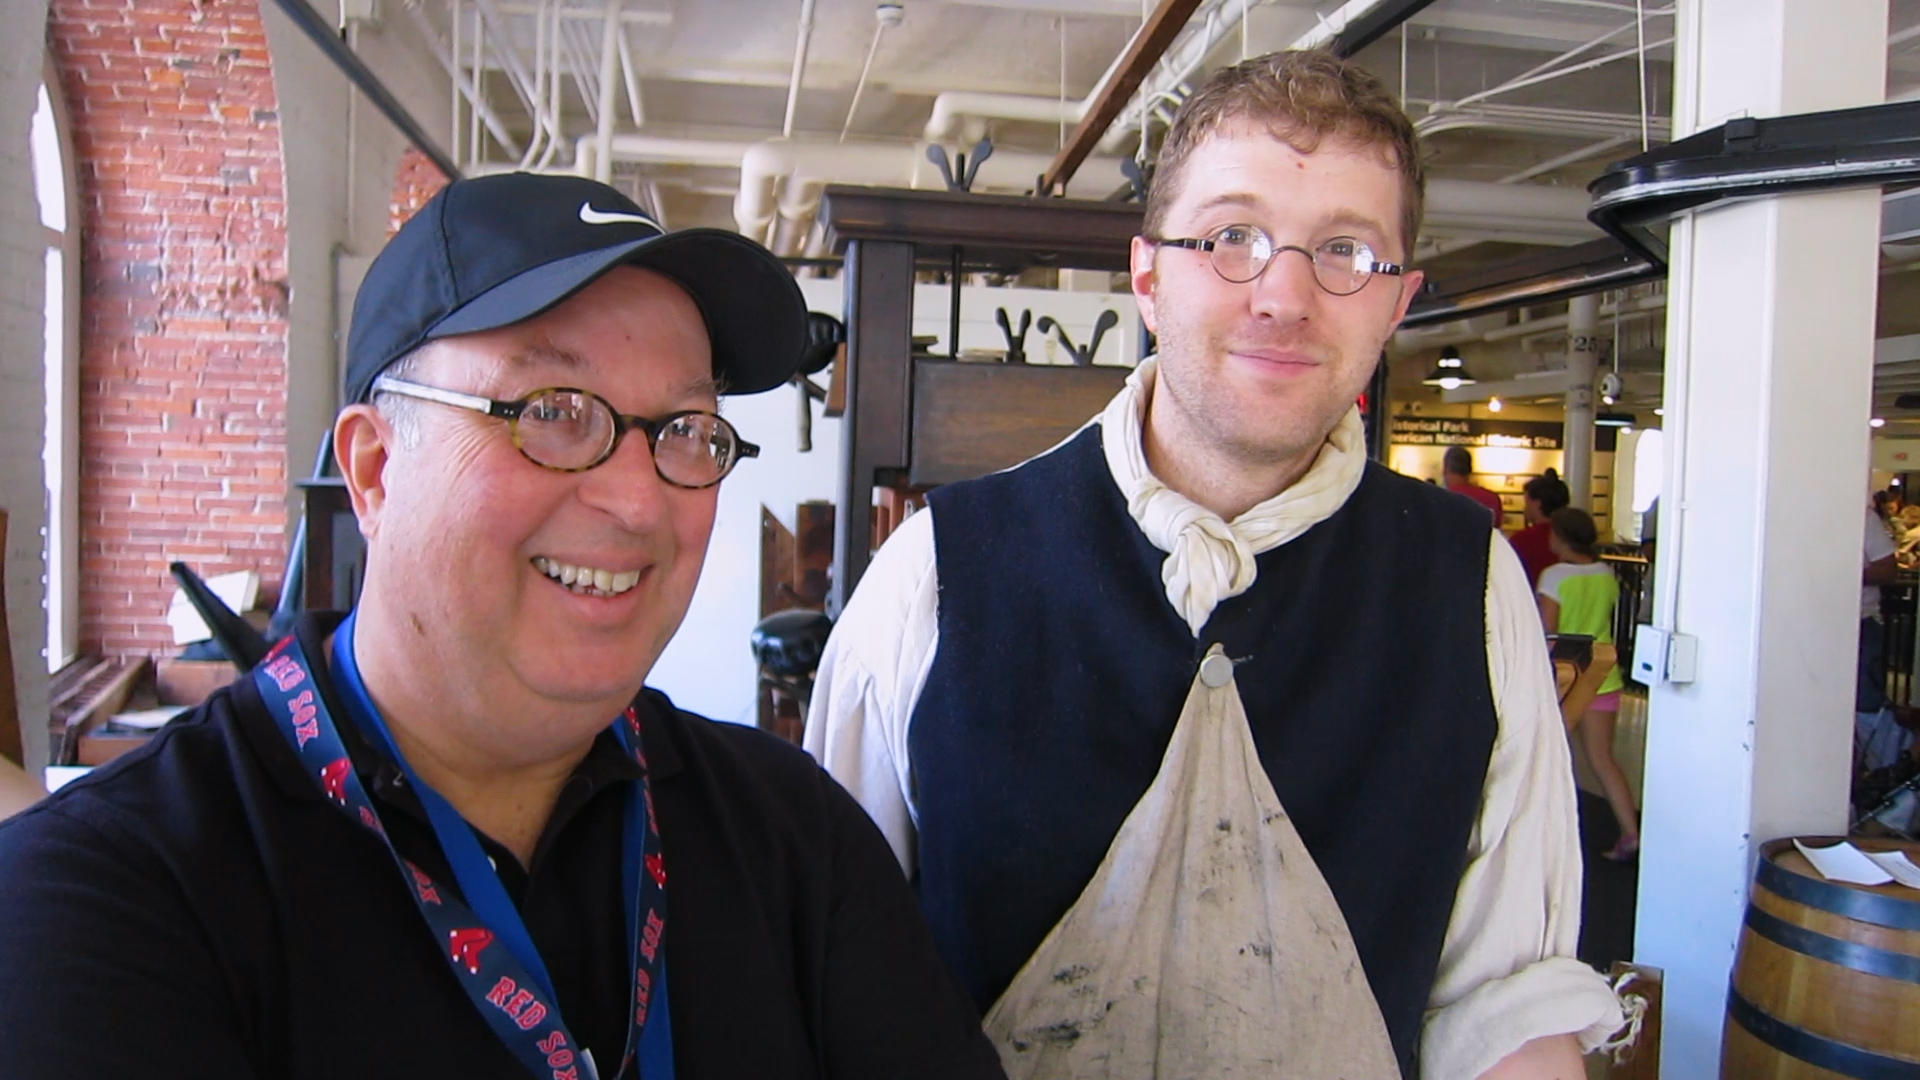 Video preview: Frank Visits Faneuil Hall's Edes & Gill: An 18th-Century Print Shop